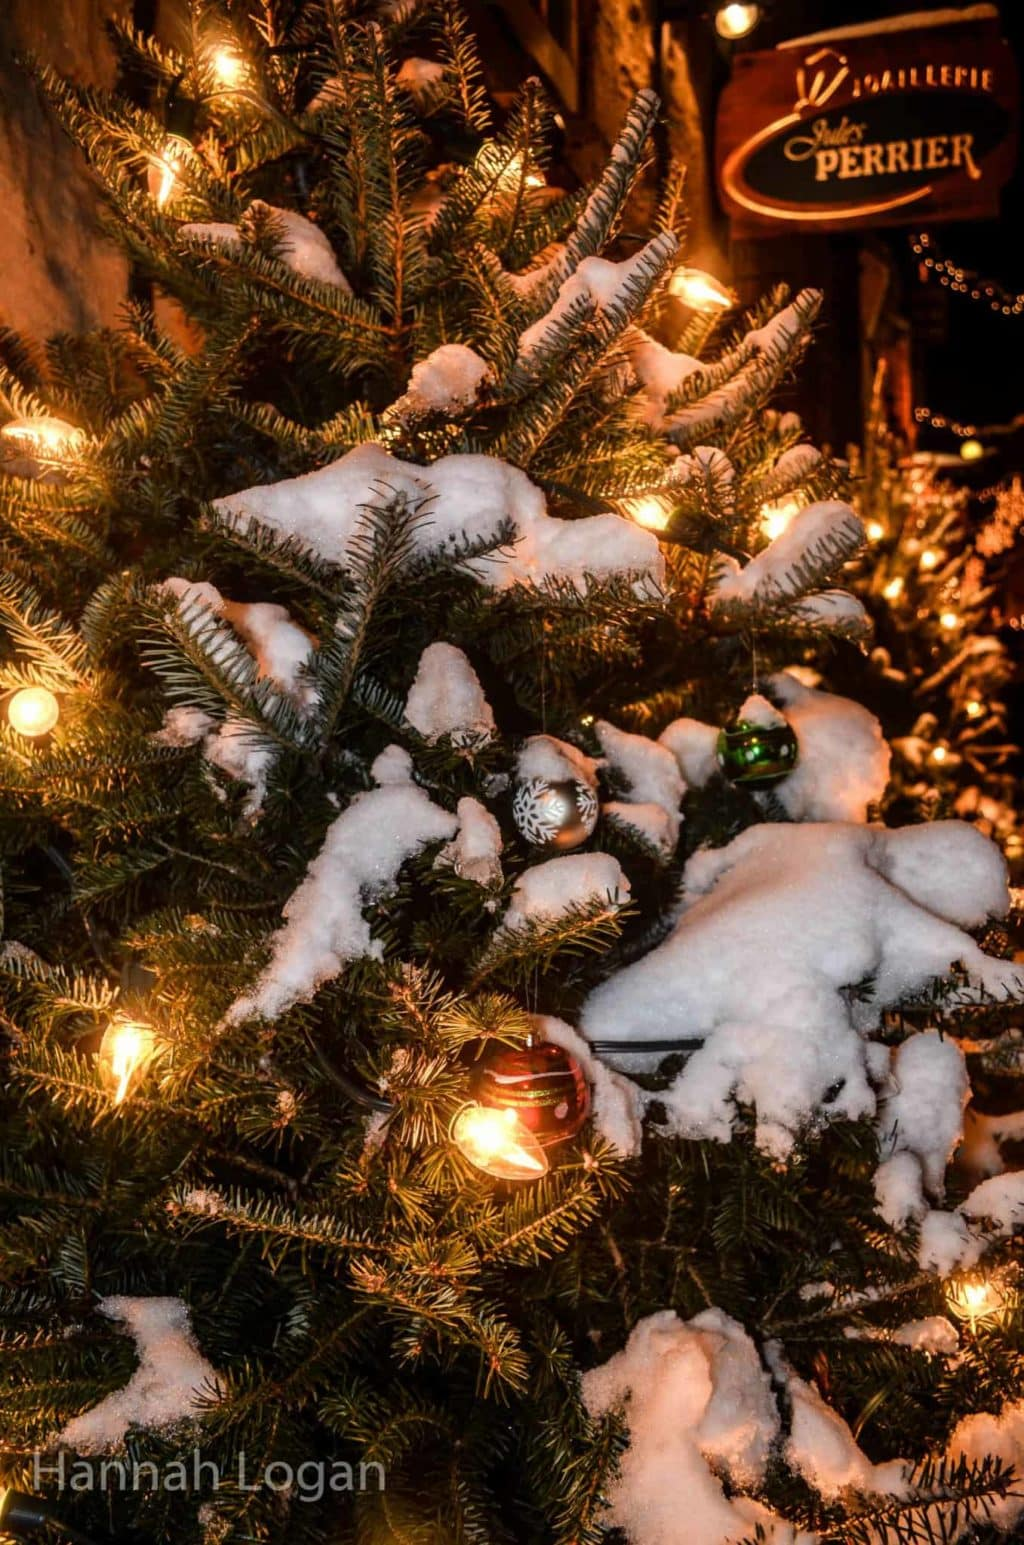 a white christmas in quebec city a photo essay eat sleep snowy christmas tree outside a shop